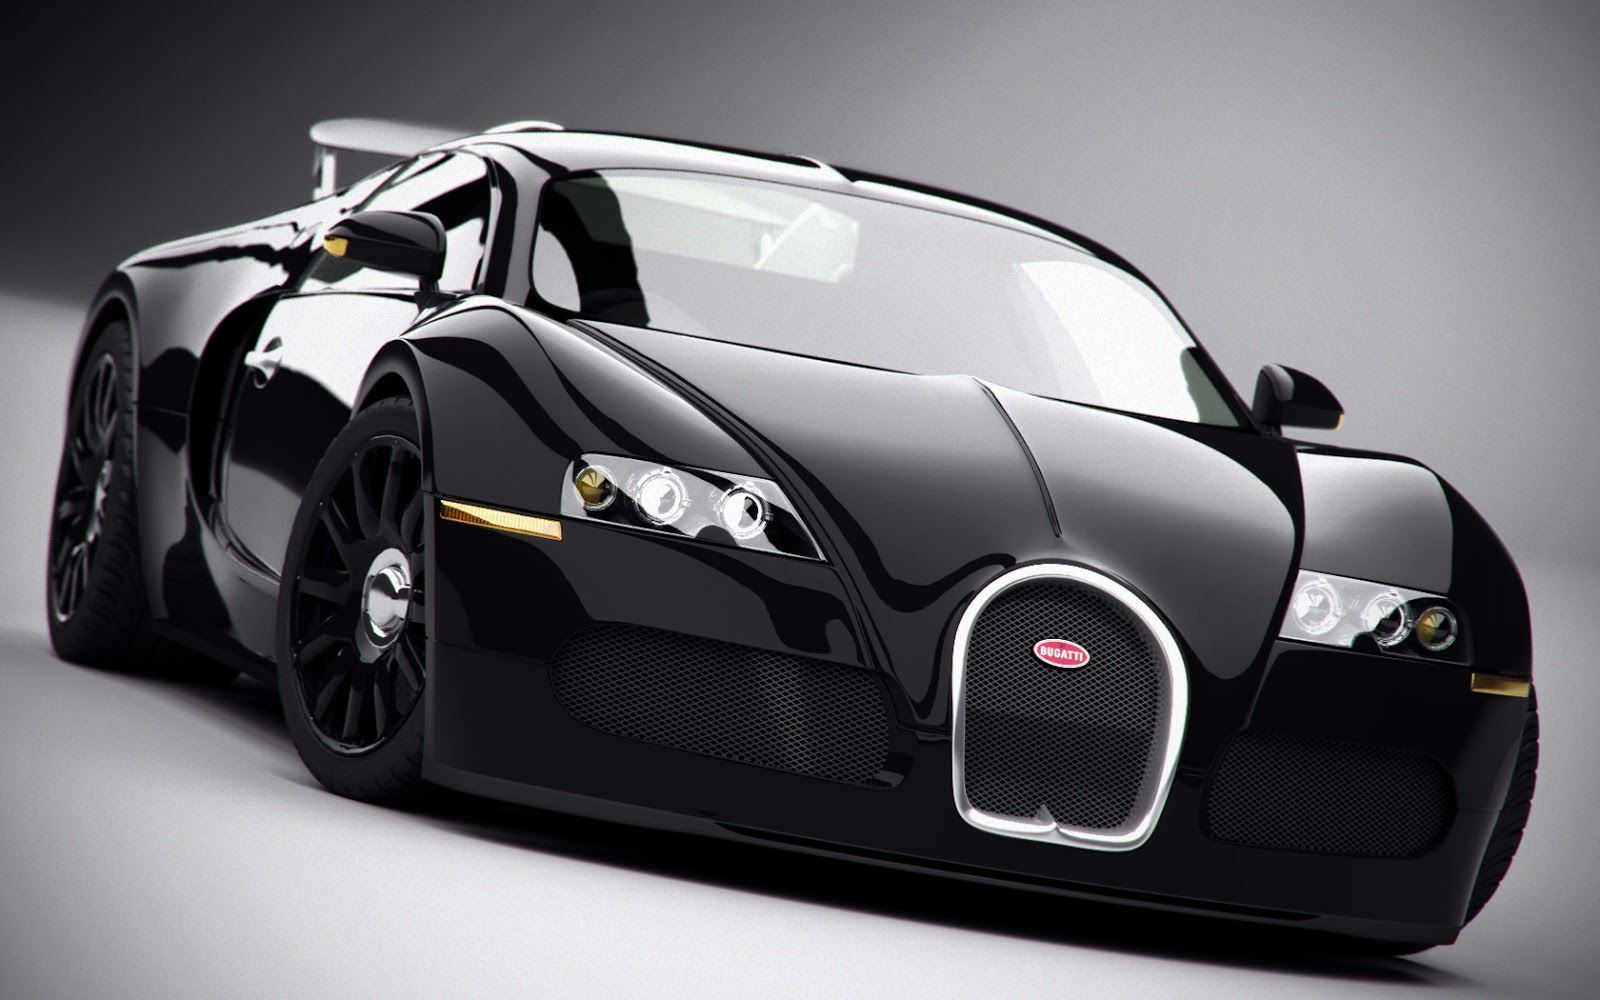 Hd wallpaper cars - Collection Of Wallpapers Cars On Hdwallpapers 1600 1000 Hd Wallpapers Of Cars 59 Wallpapers